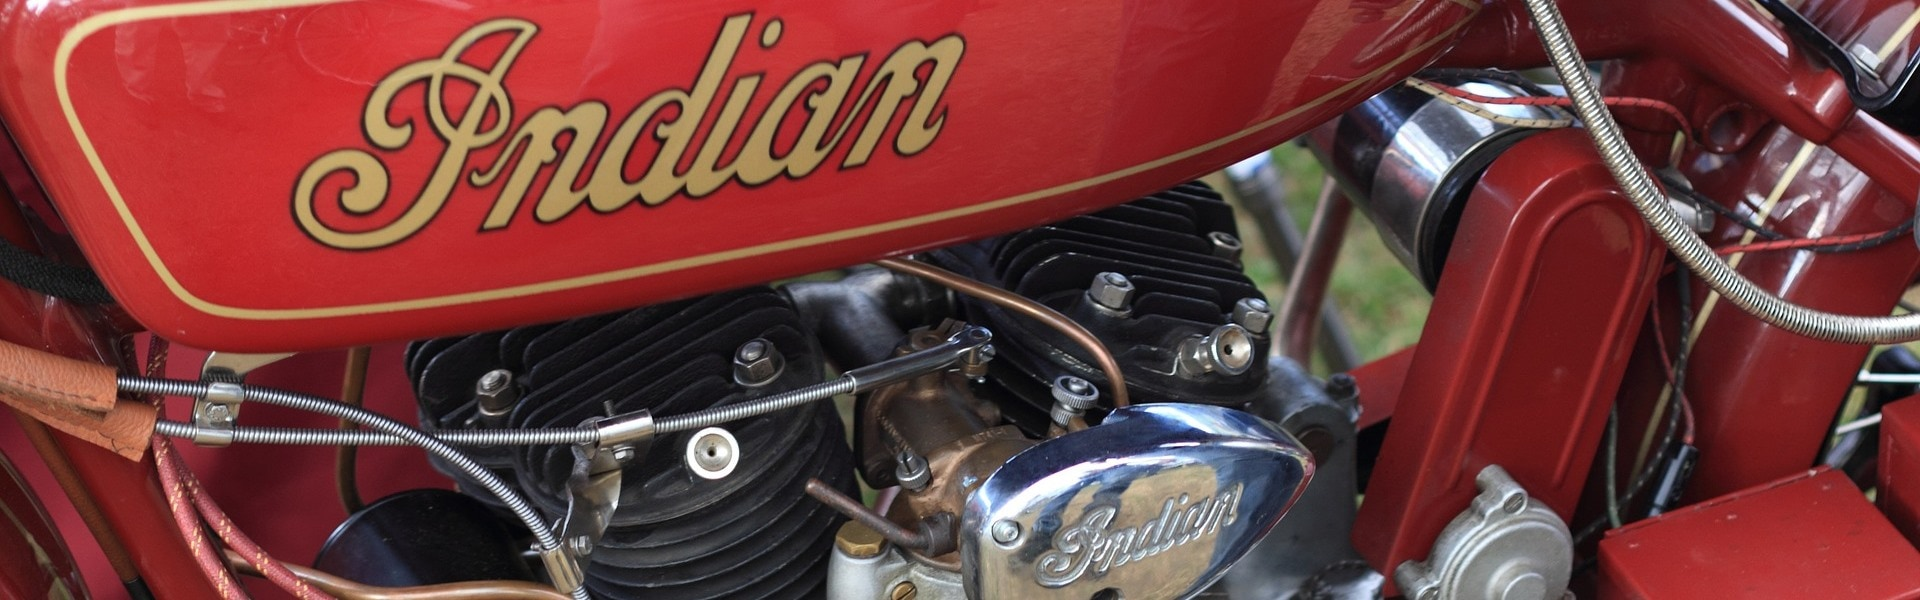 red indian motorcycle engine